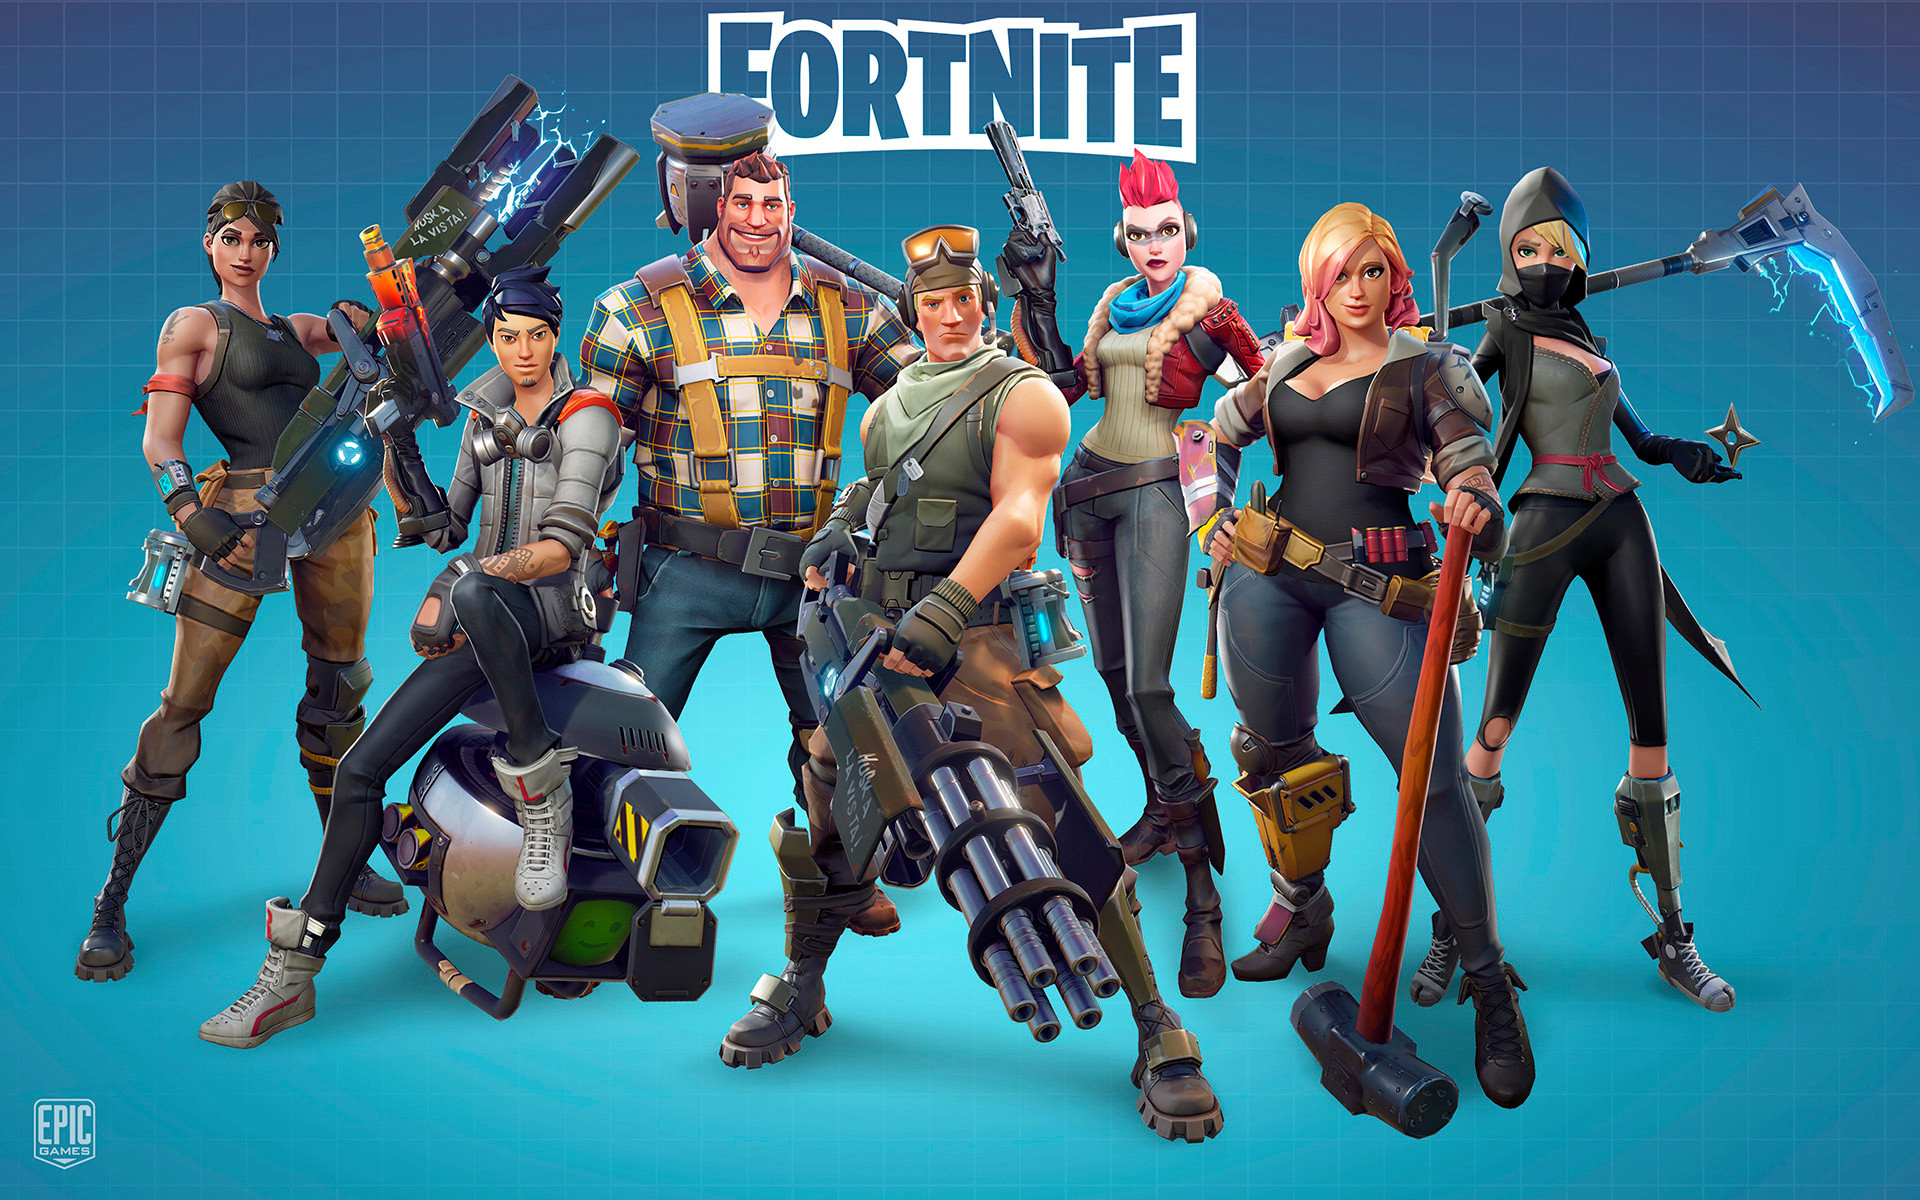 Fortnite announced 'The End'